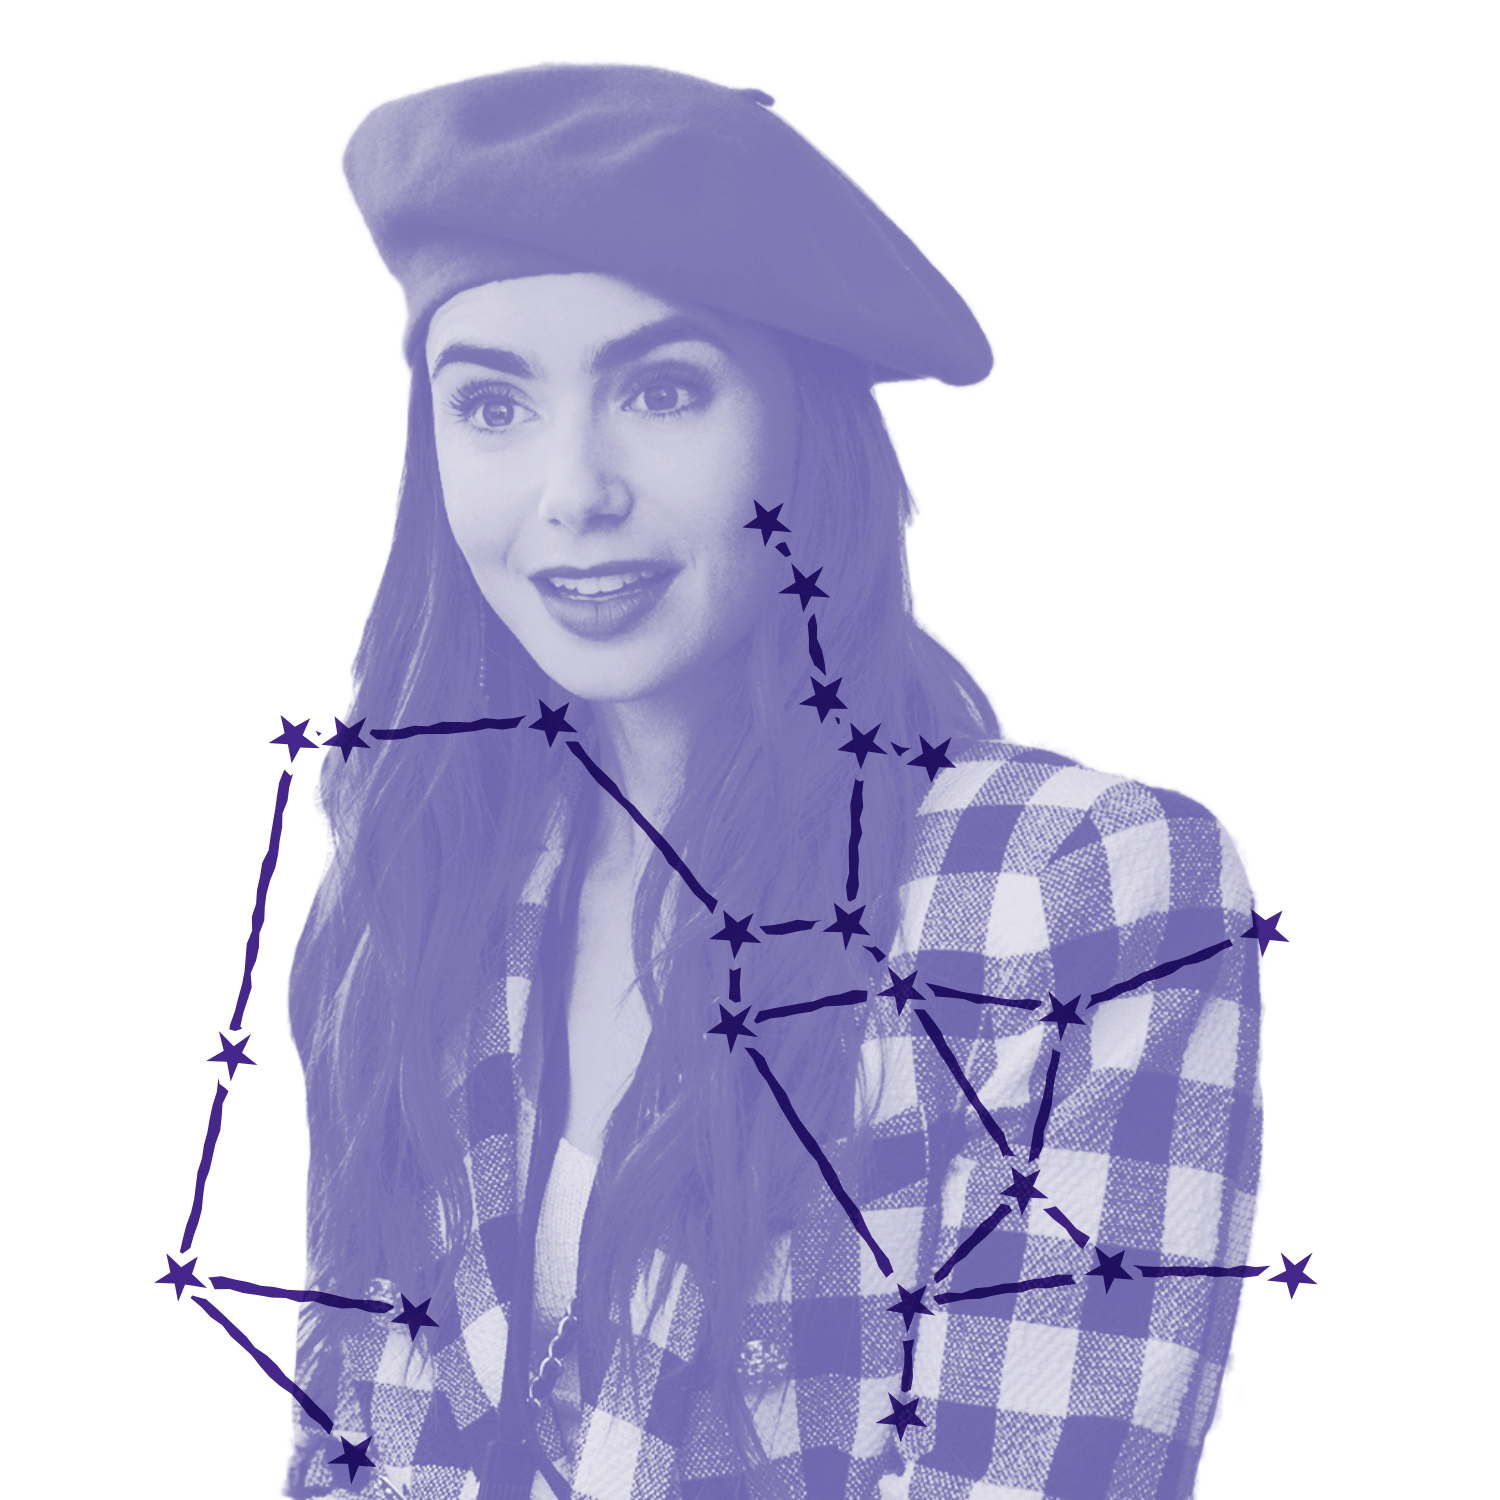 Emily Cooper (played by Lily Collins) is ready to conquer the world in her checkered coat and beret in this still from Emily in Paris. Over the image is an illustration of Emily's zodiac constellation.